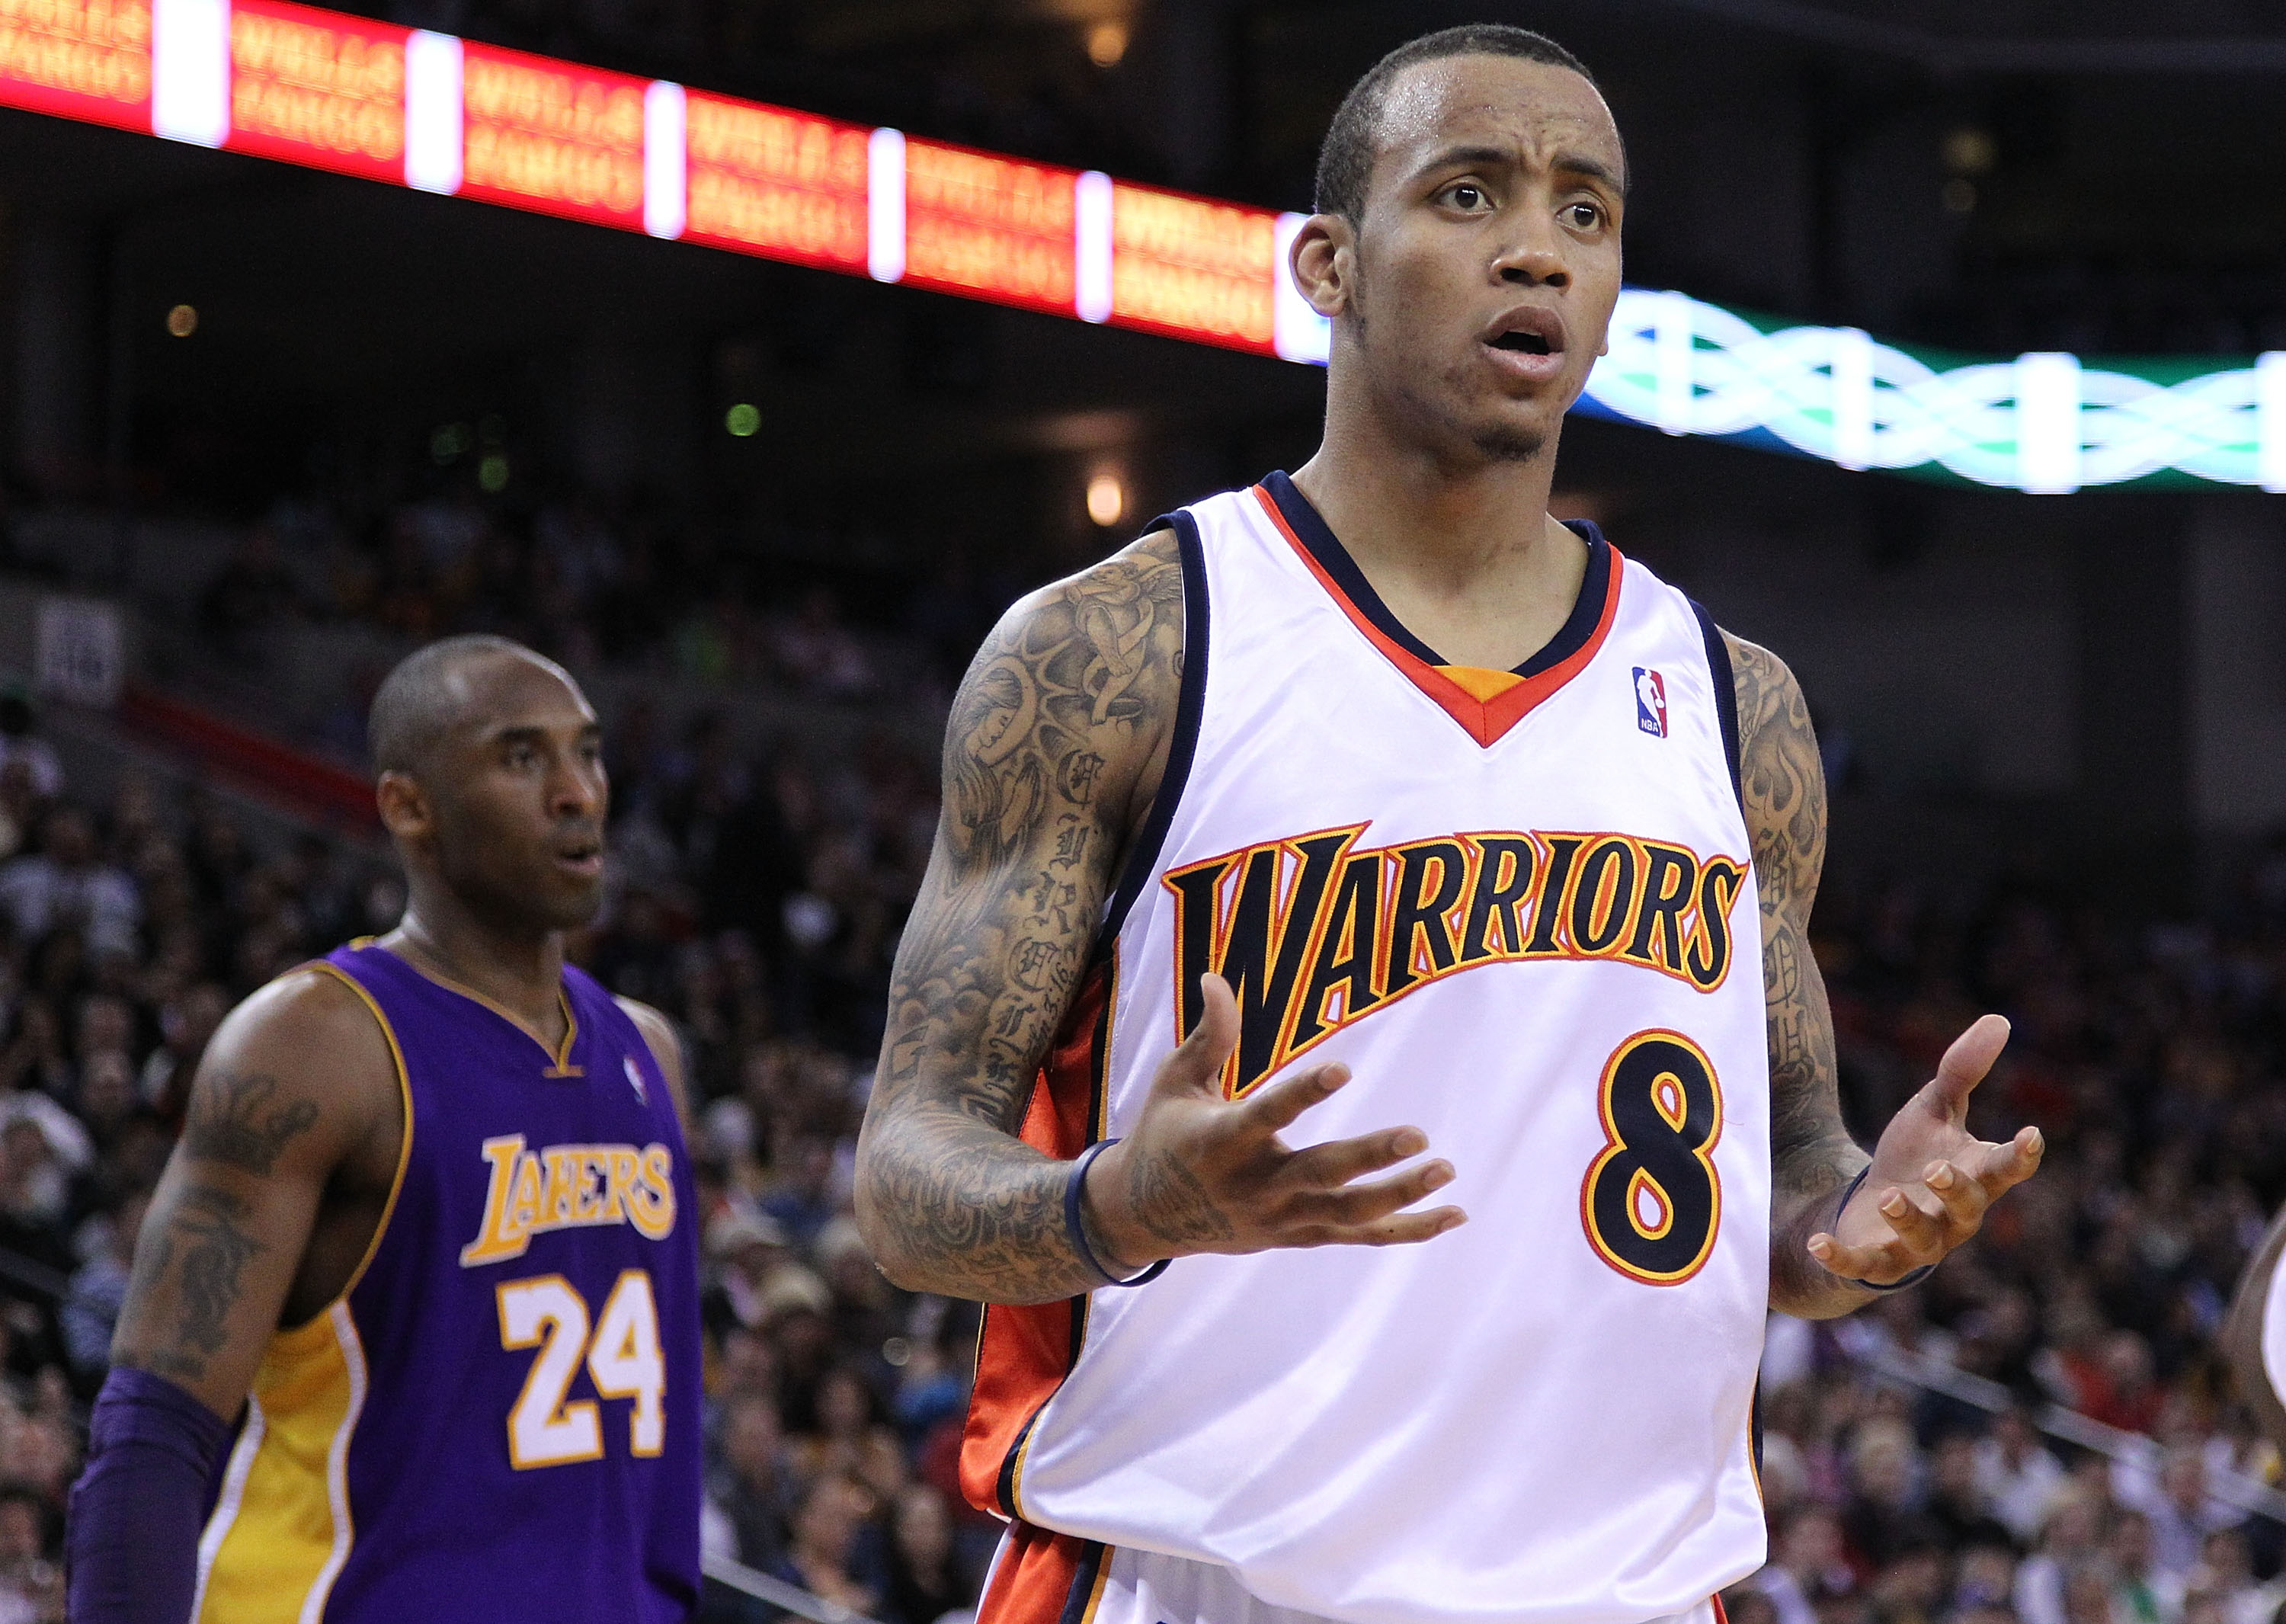 OAKLAND, CA - MARCH 15:  Monta Ellis #8 of the Golden State Warriors reacts to a call during action against the Los Angeles Lakers during an NBA game at Oracle Arena on March 15, 2010 in Oakland, California. NOTE TO USER: User expressly acknowledges and a